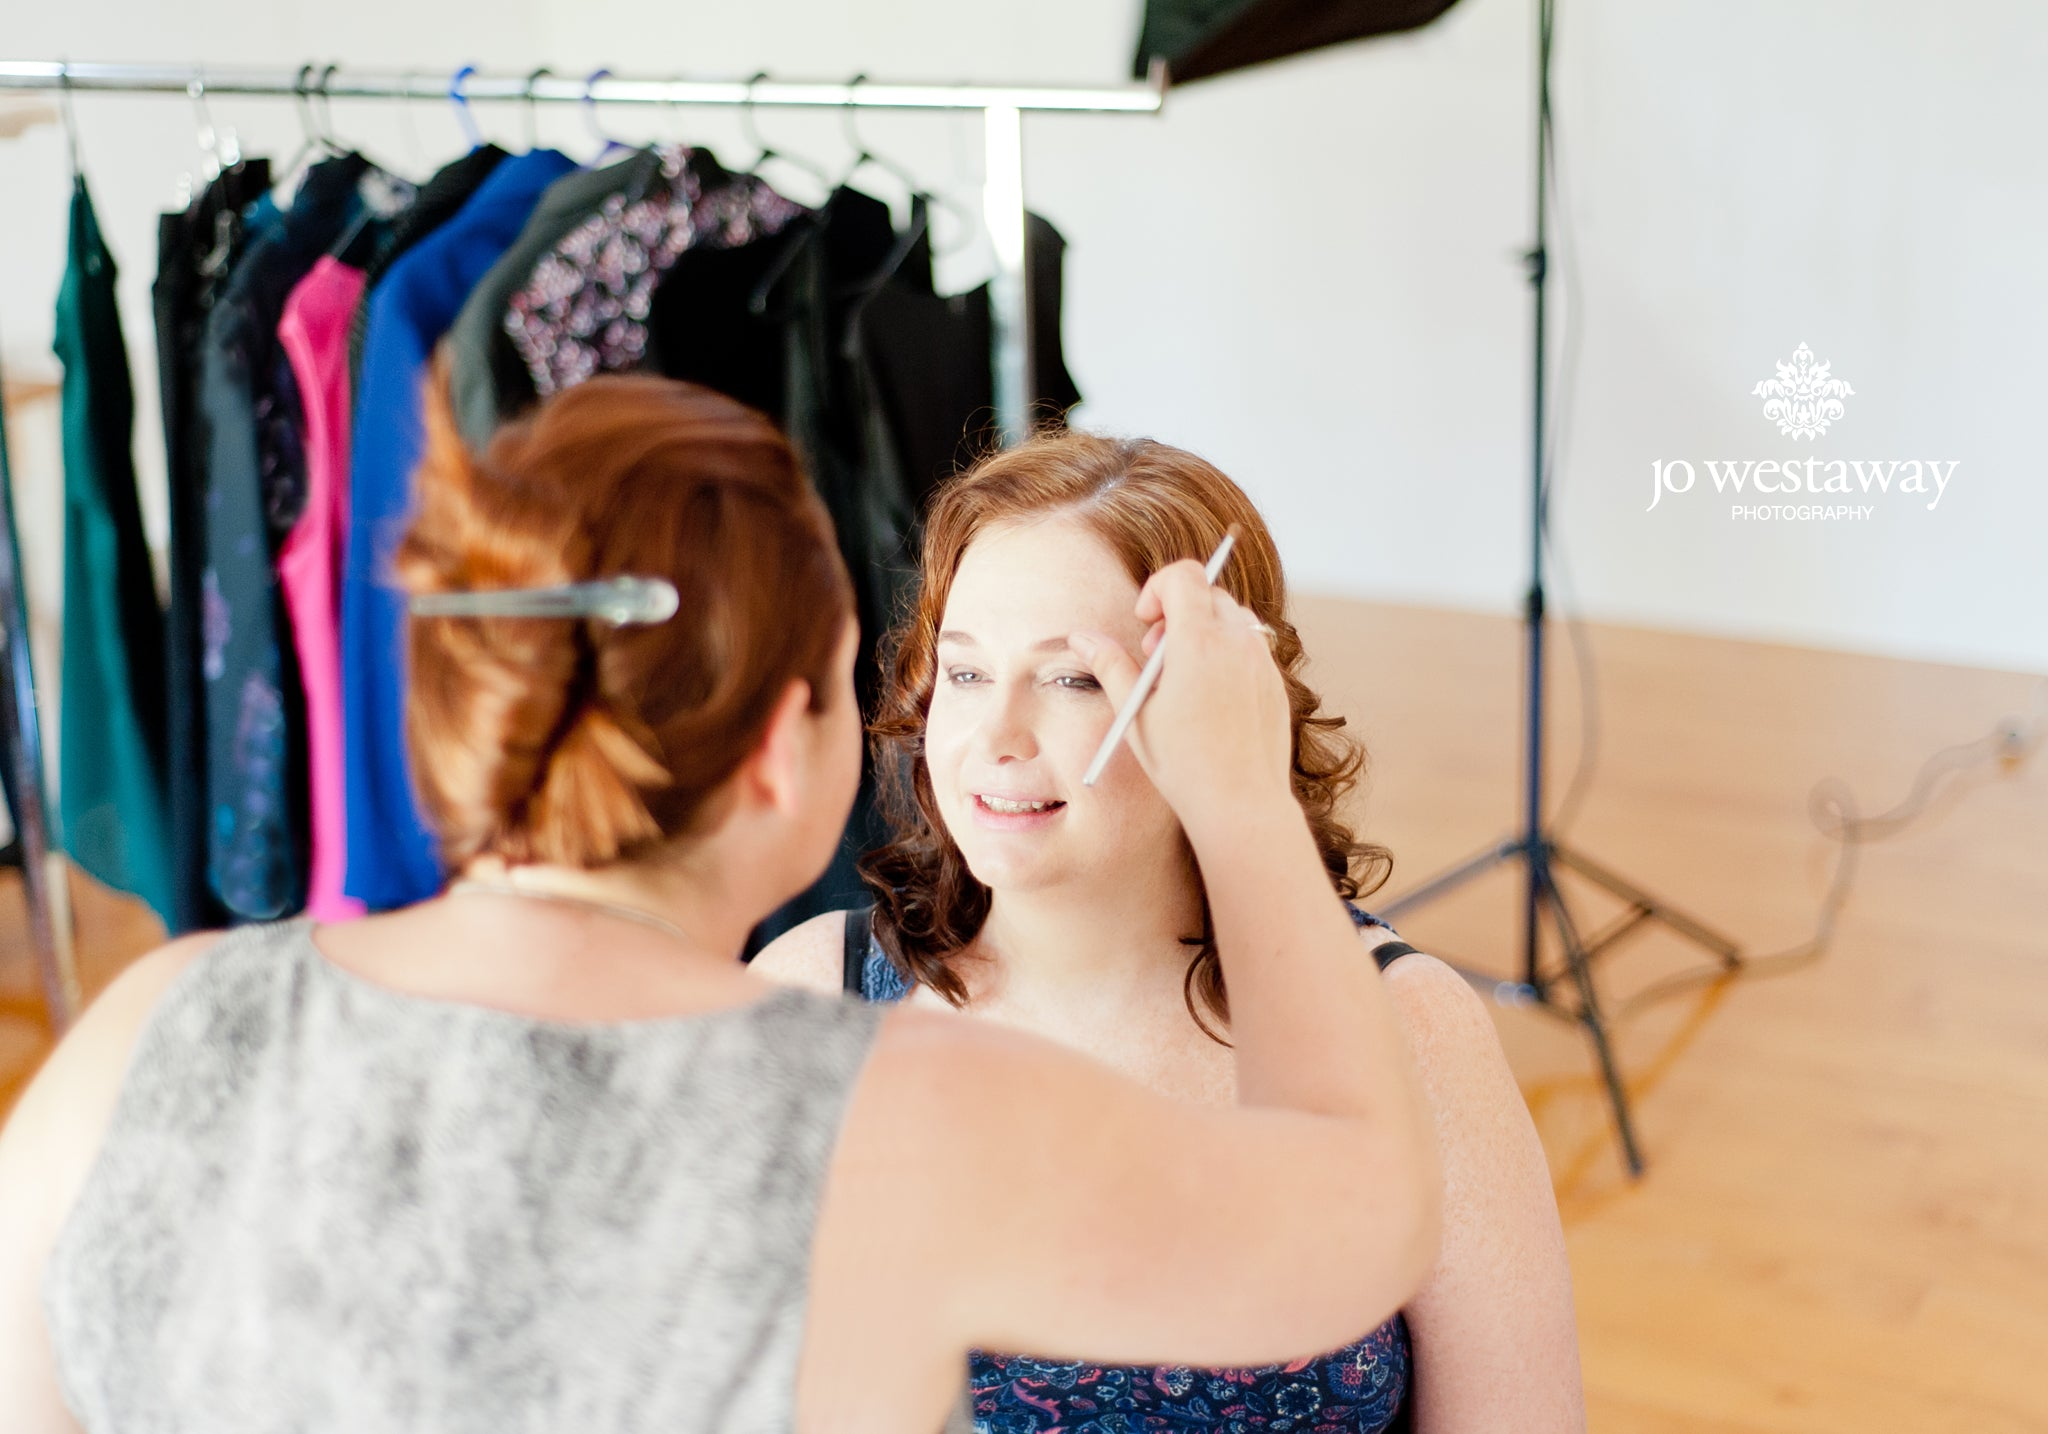 Personal branding photography shoot with professional hair and make-up